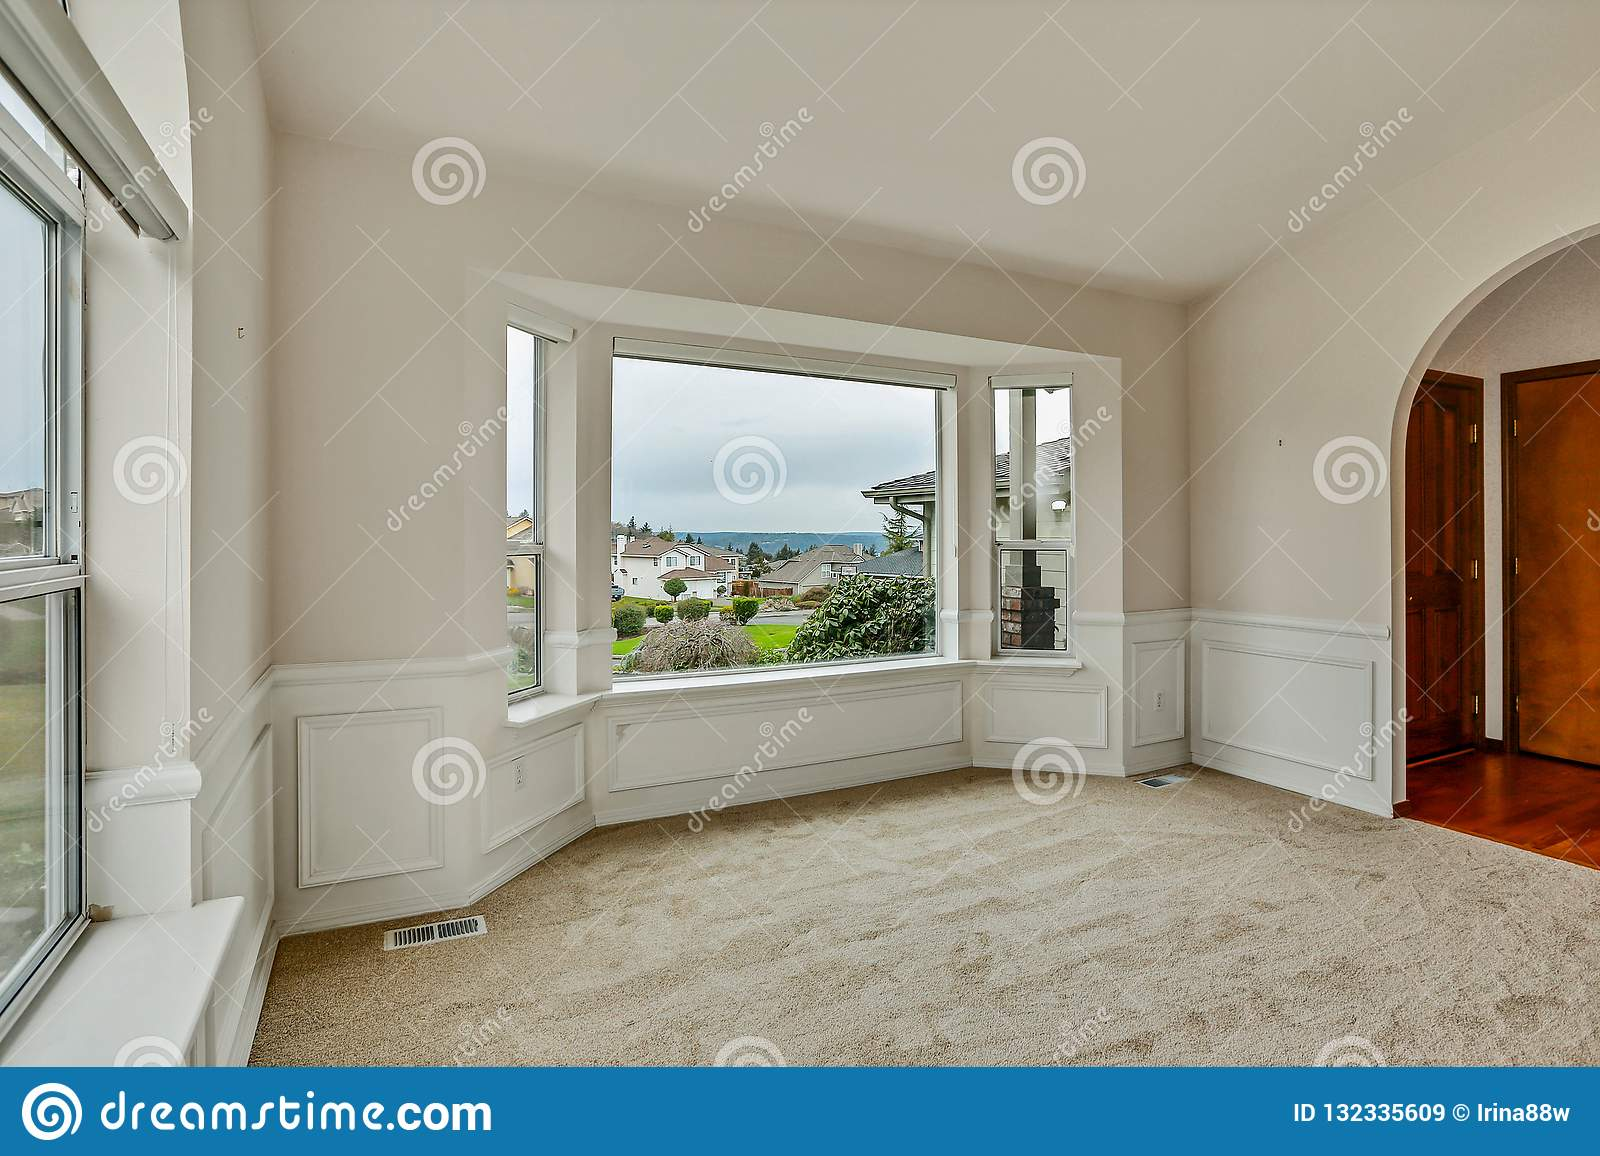 Empty front office room with large windows and arches